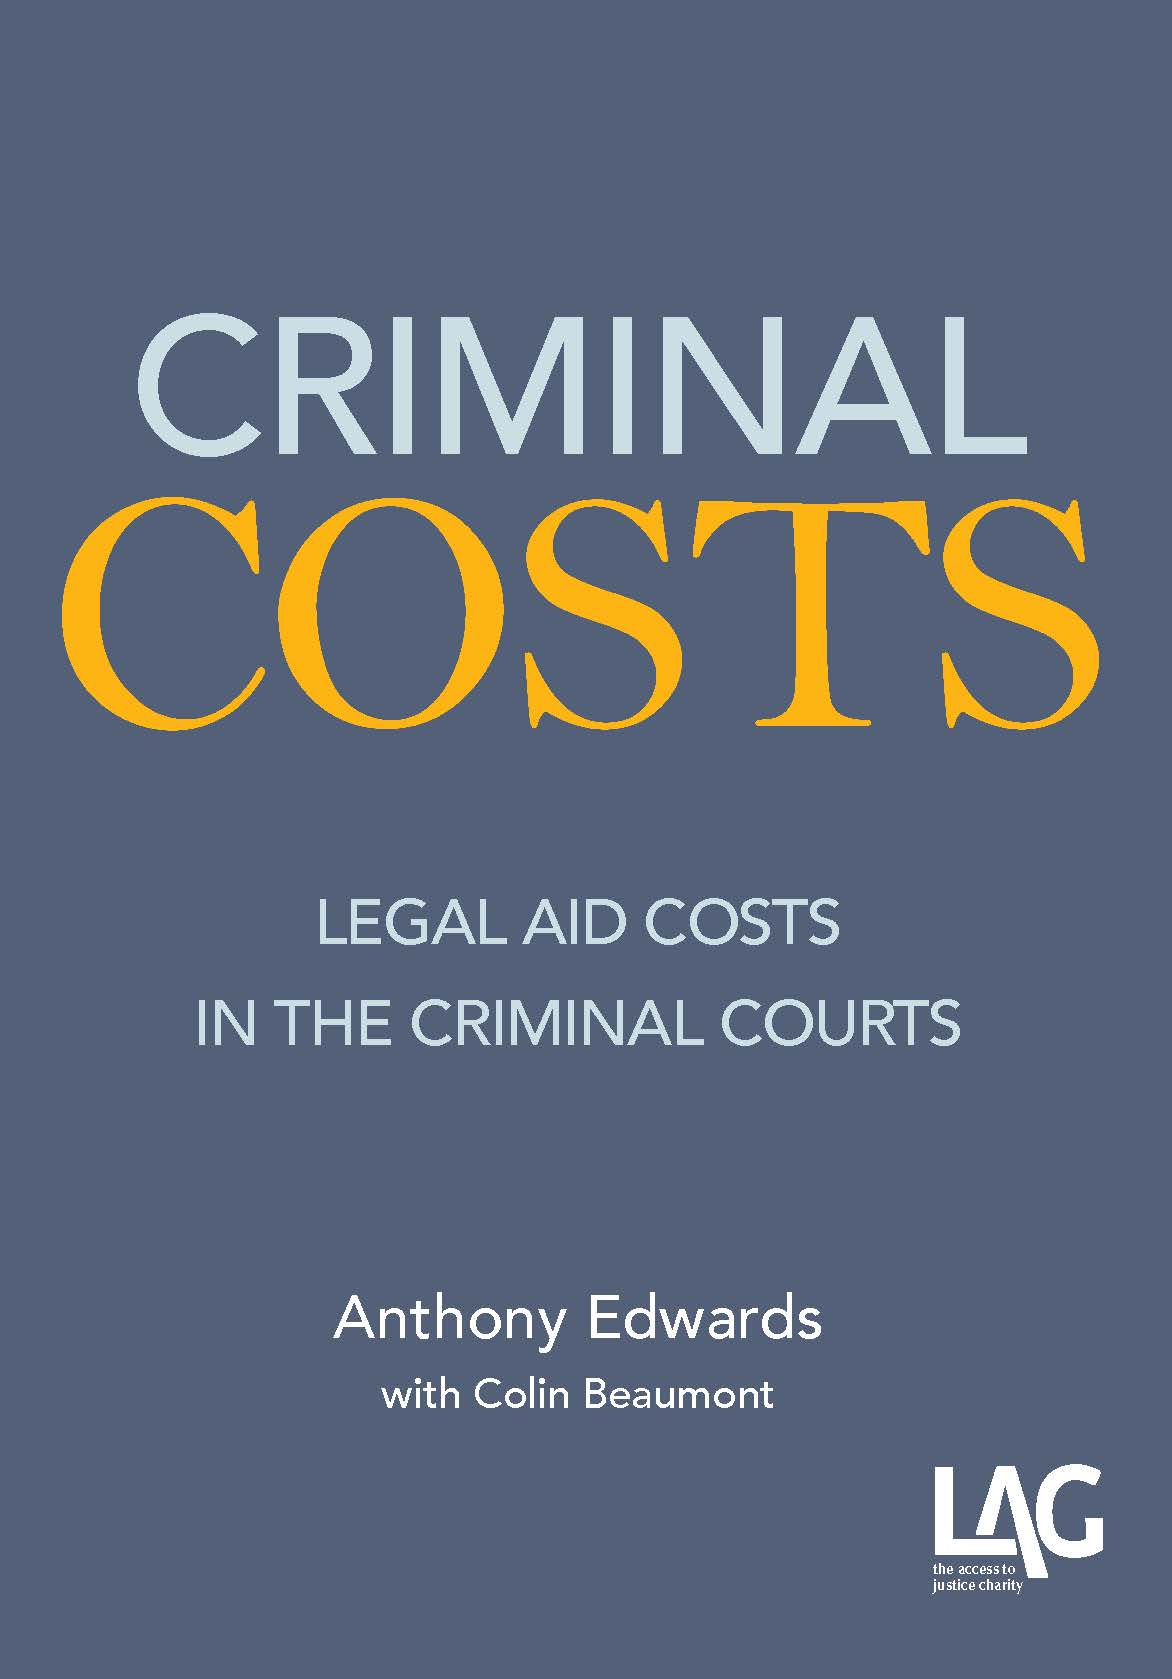 Legal aid: how has it changed in 70 years?